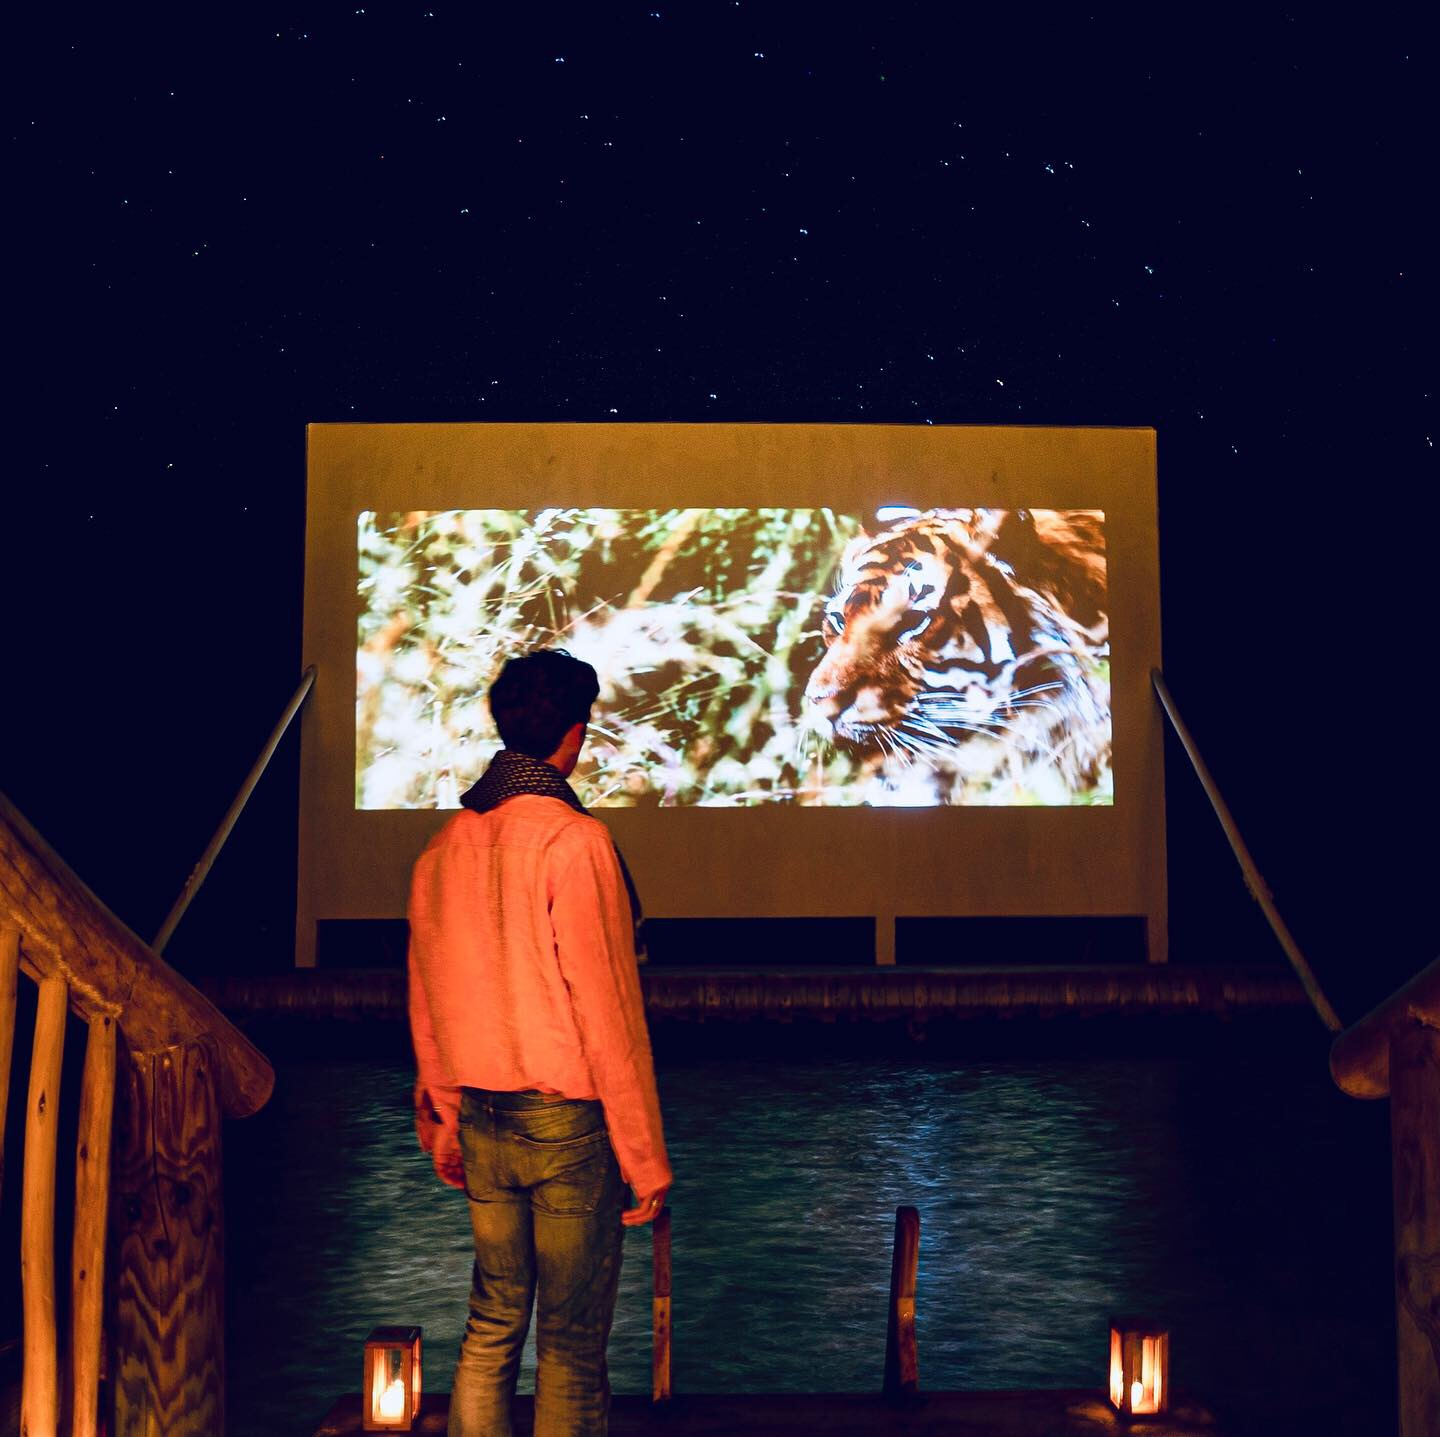 To Hunt a Tiger Premiered at World's First Overwater Cinema at Soneva Jani, The Maldives